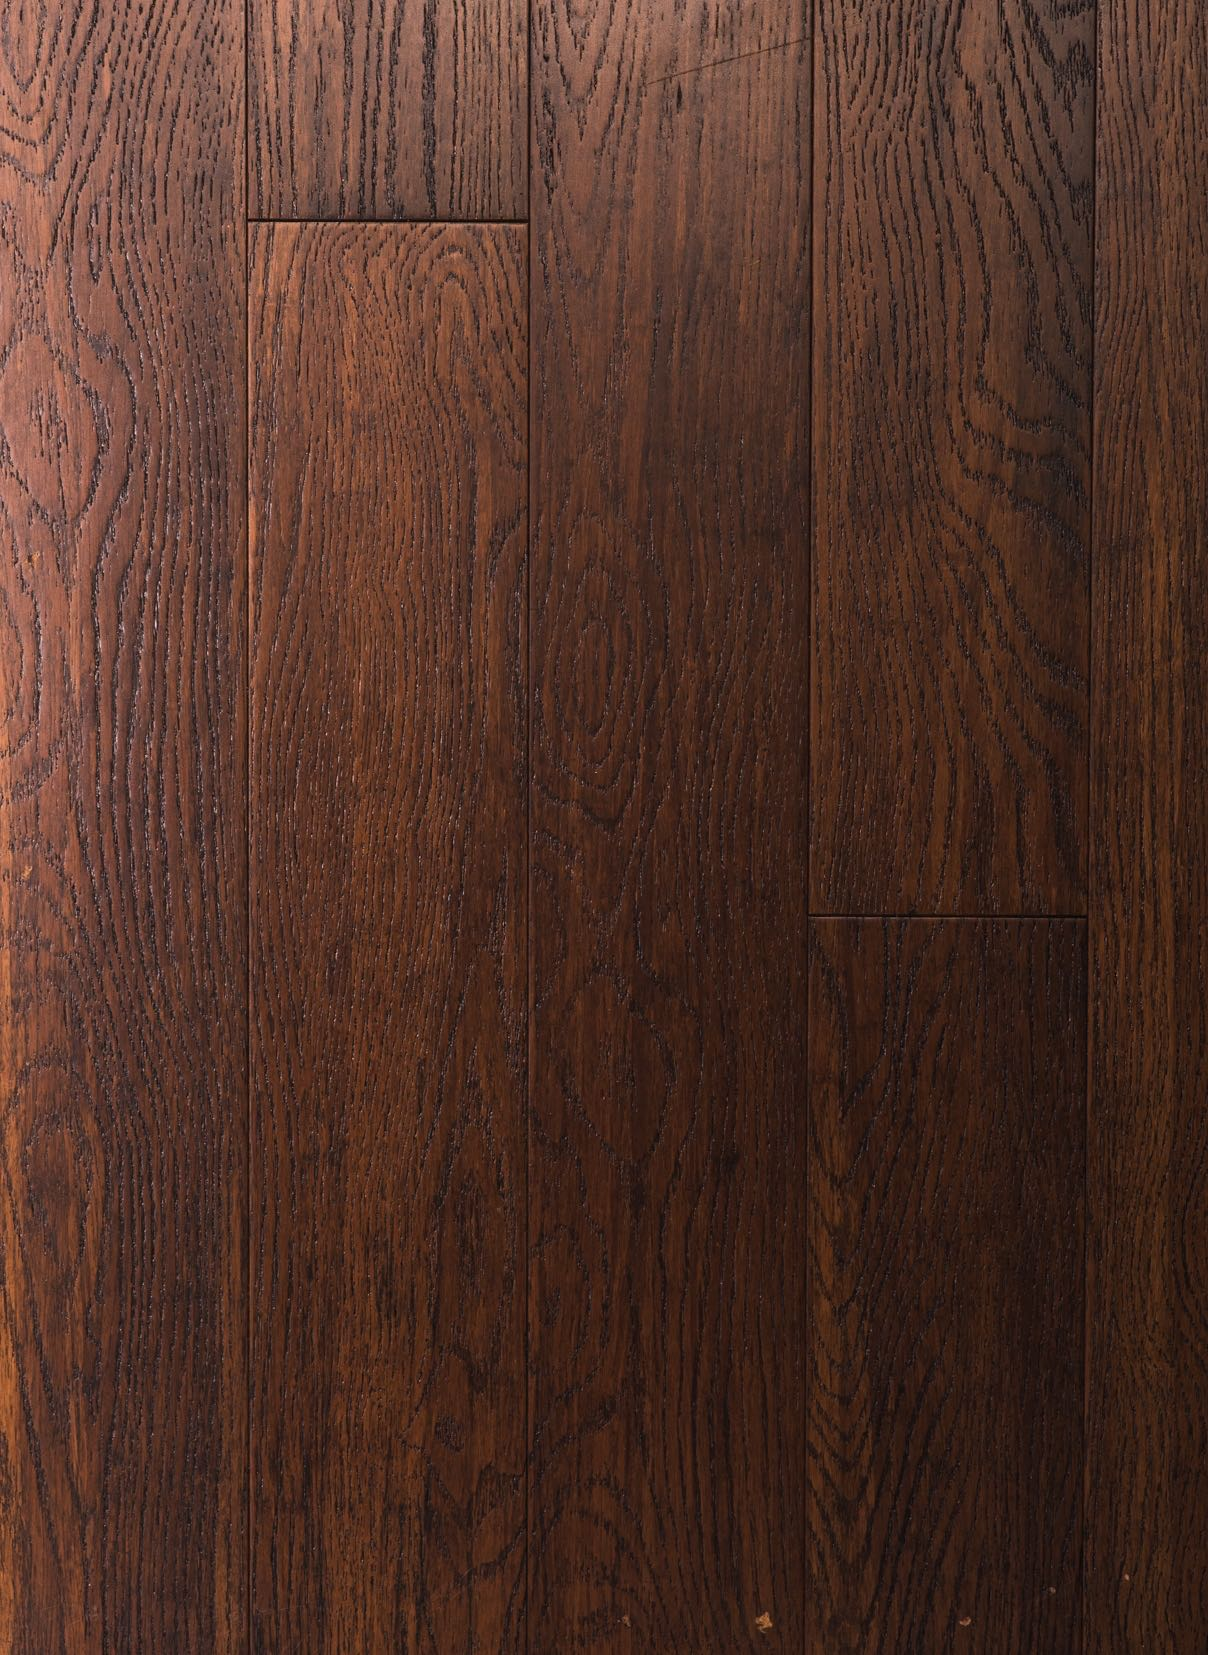 American Walnut (Large) – Reduced